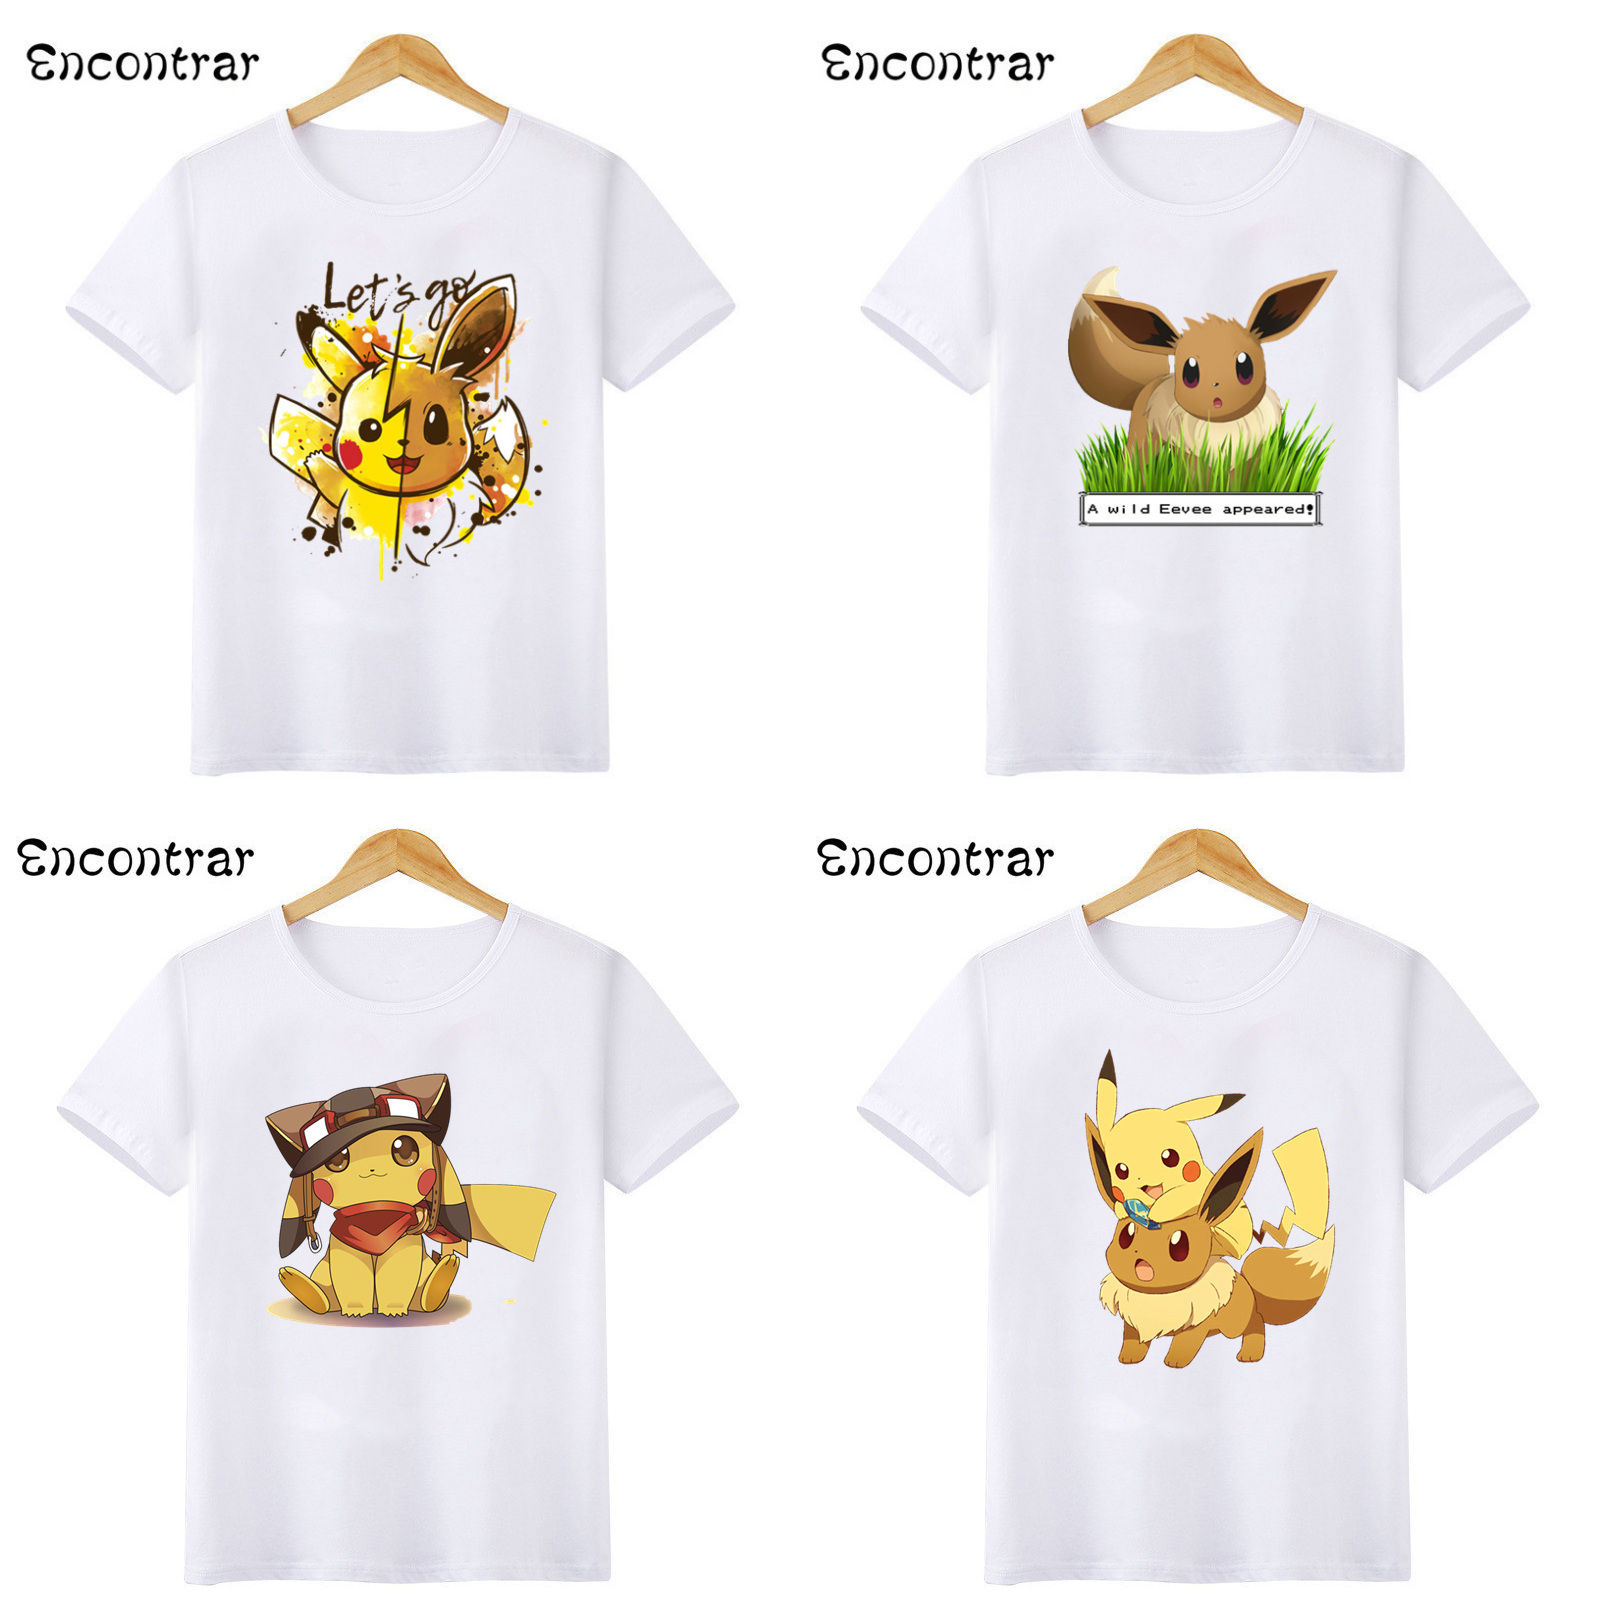 Cute Pikachu & Eevee Let's Go Cartoon Kids T-shirts Baby Boys/Girls Pokemon Funny White T Shirt Children Summer Tops,HKP2208